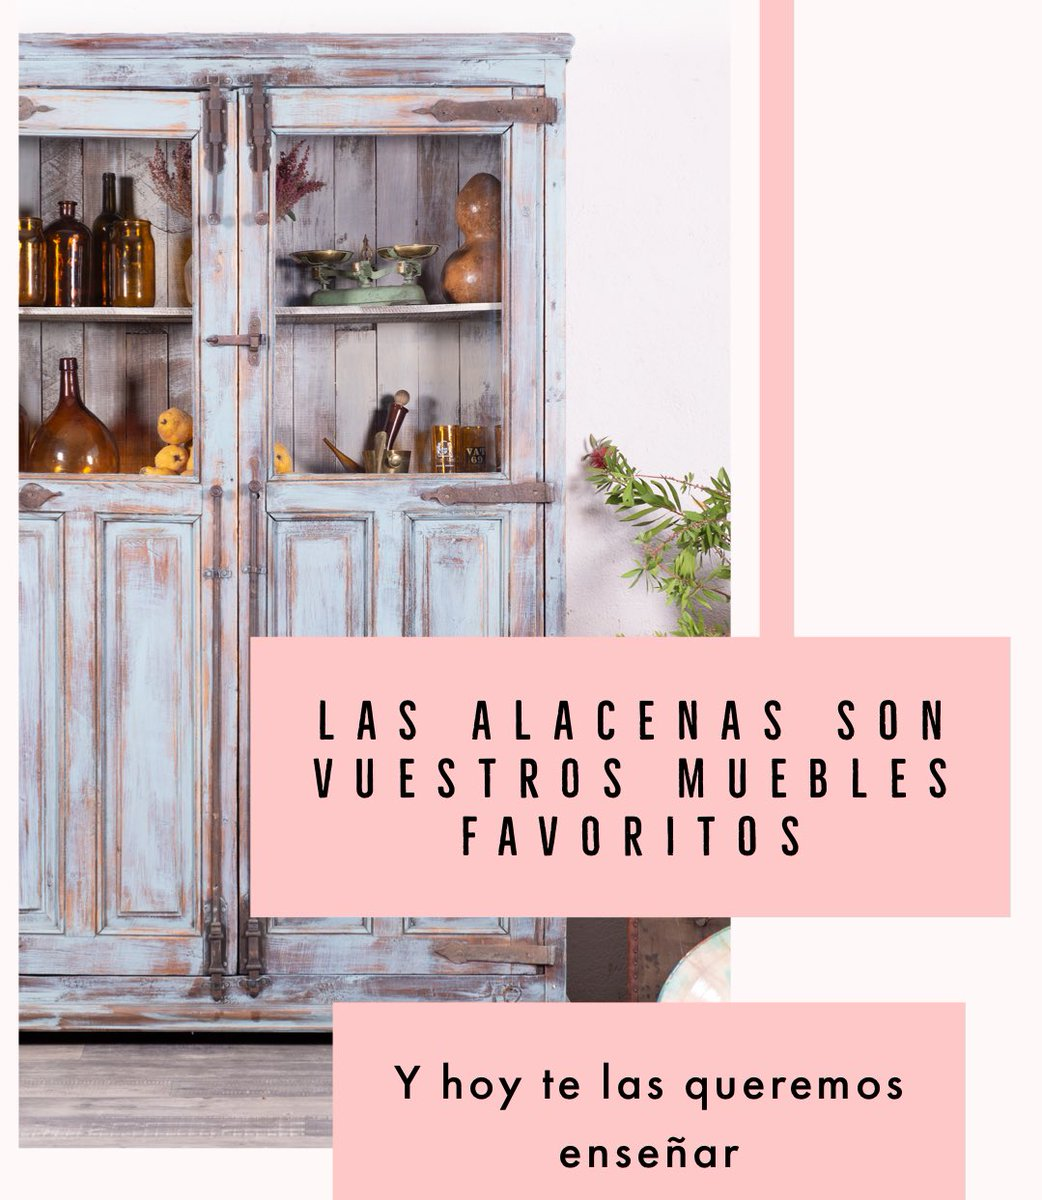 #alacenas #muebles #antique #madrid #tiendademubles #mueblesvintage #decoracion #decoration #deco #decolovers #lovedeco #decoradores #interiordesign #cocina #cocinas #alacenasantiguas #alacenasvintage #casasdepueblo #hogar #home #rustic #photography